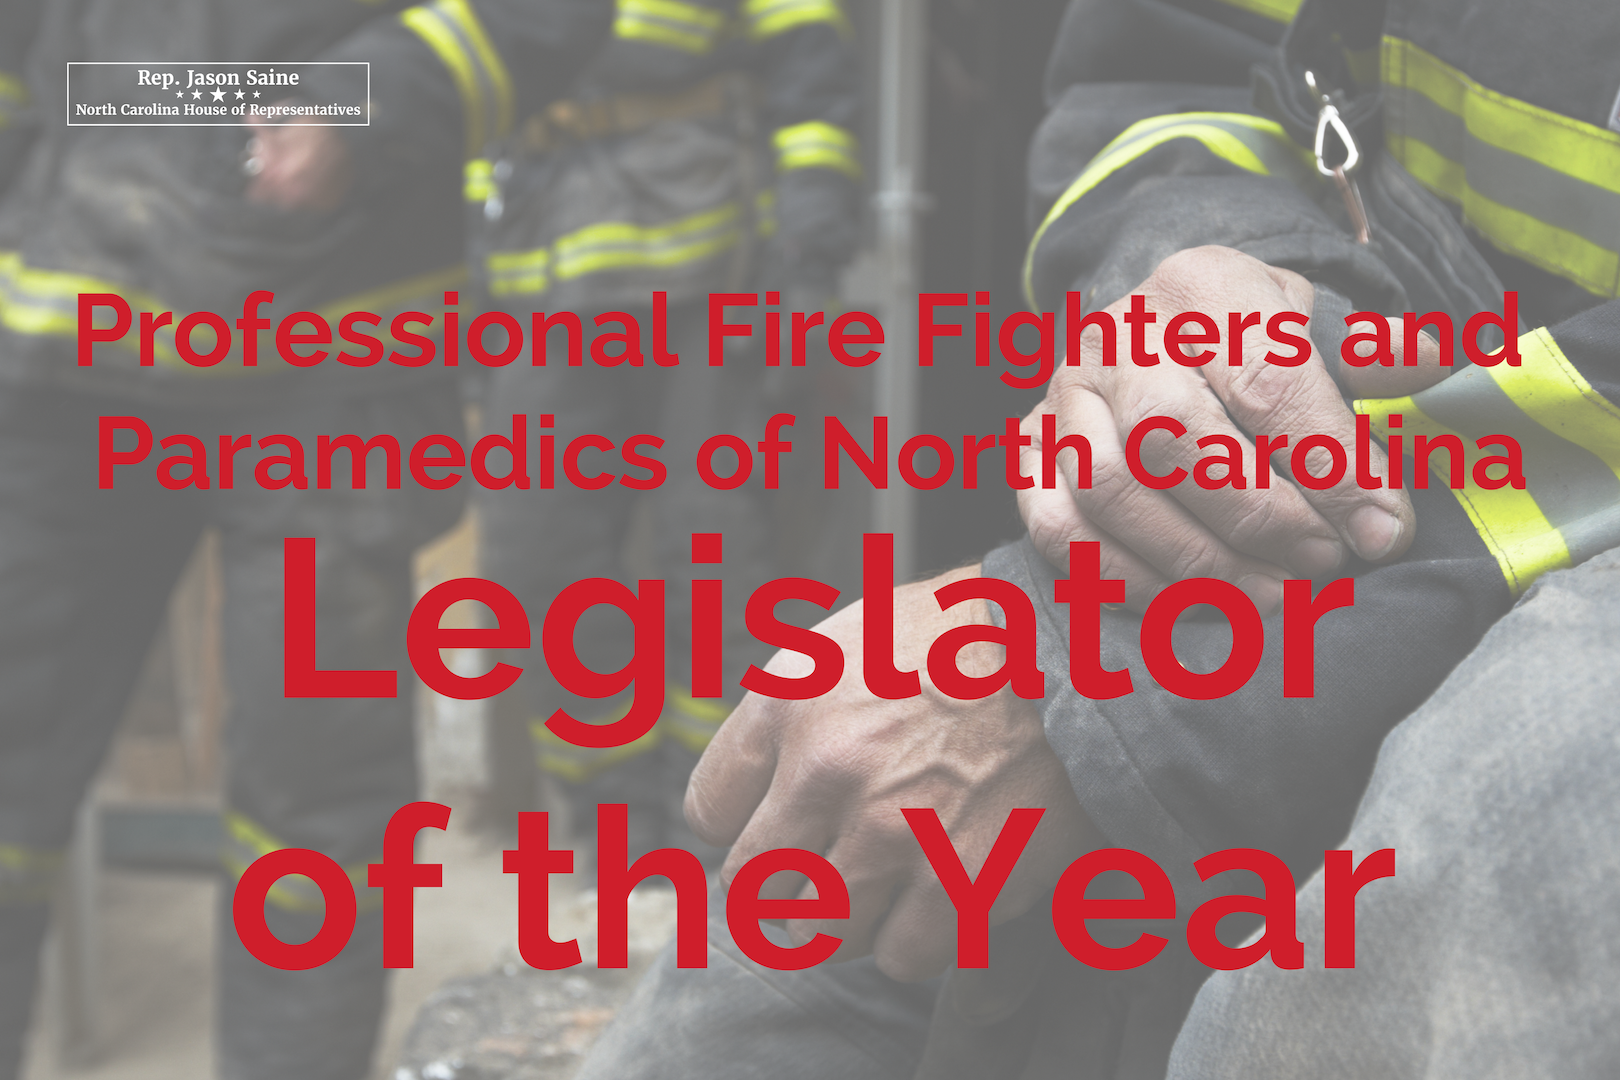 Legislator of the Year Professional Fire Fighters and Paramedics of North Carolina (PFFPNC) -